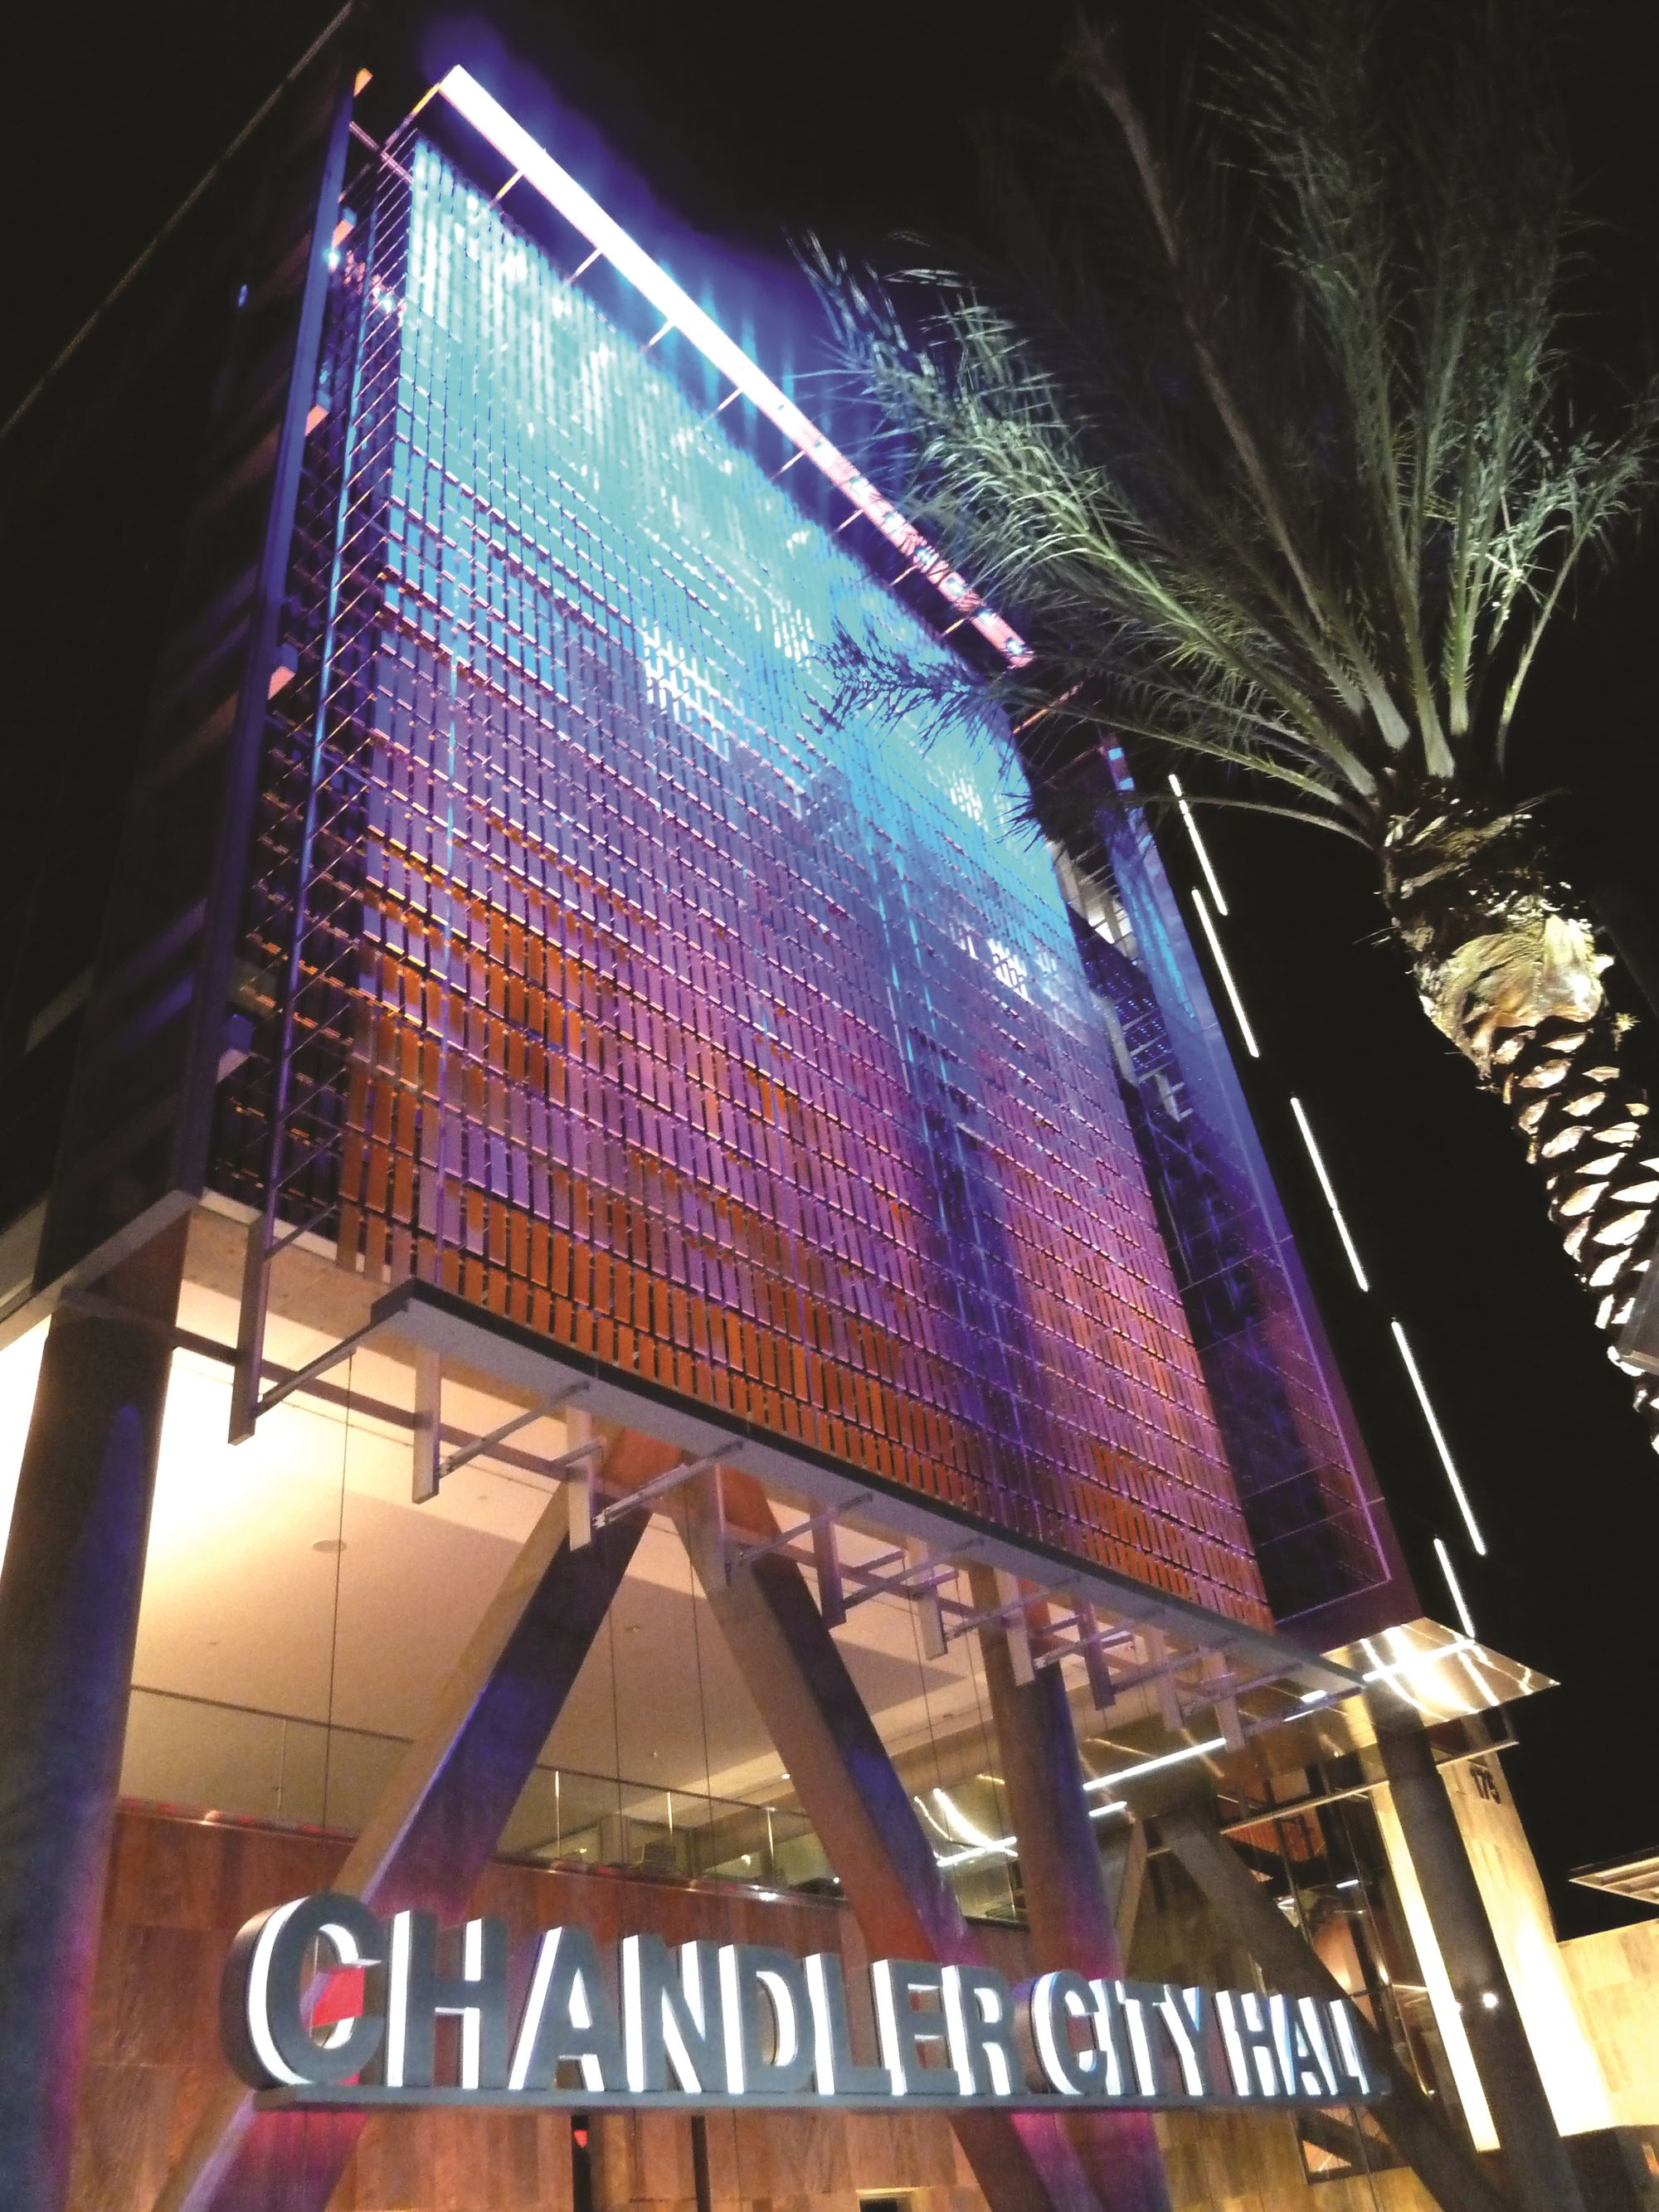 View of Perforated facade lit with LED lights